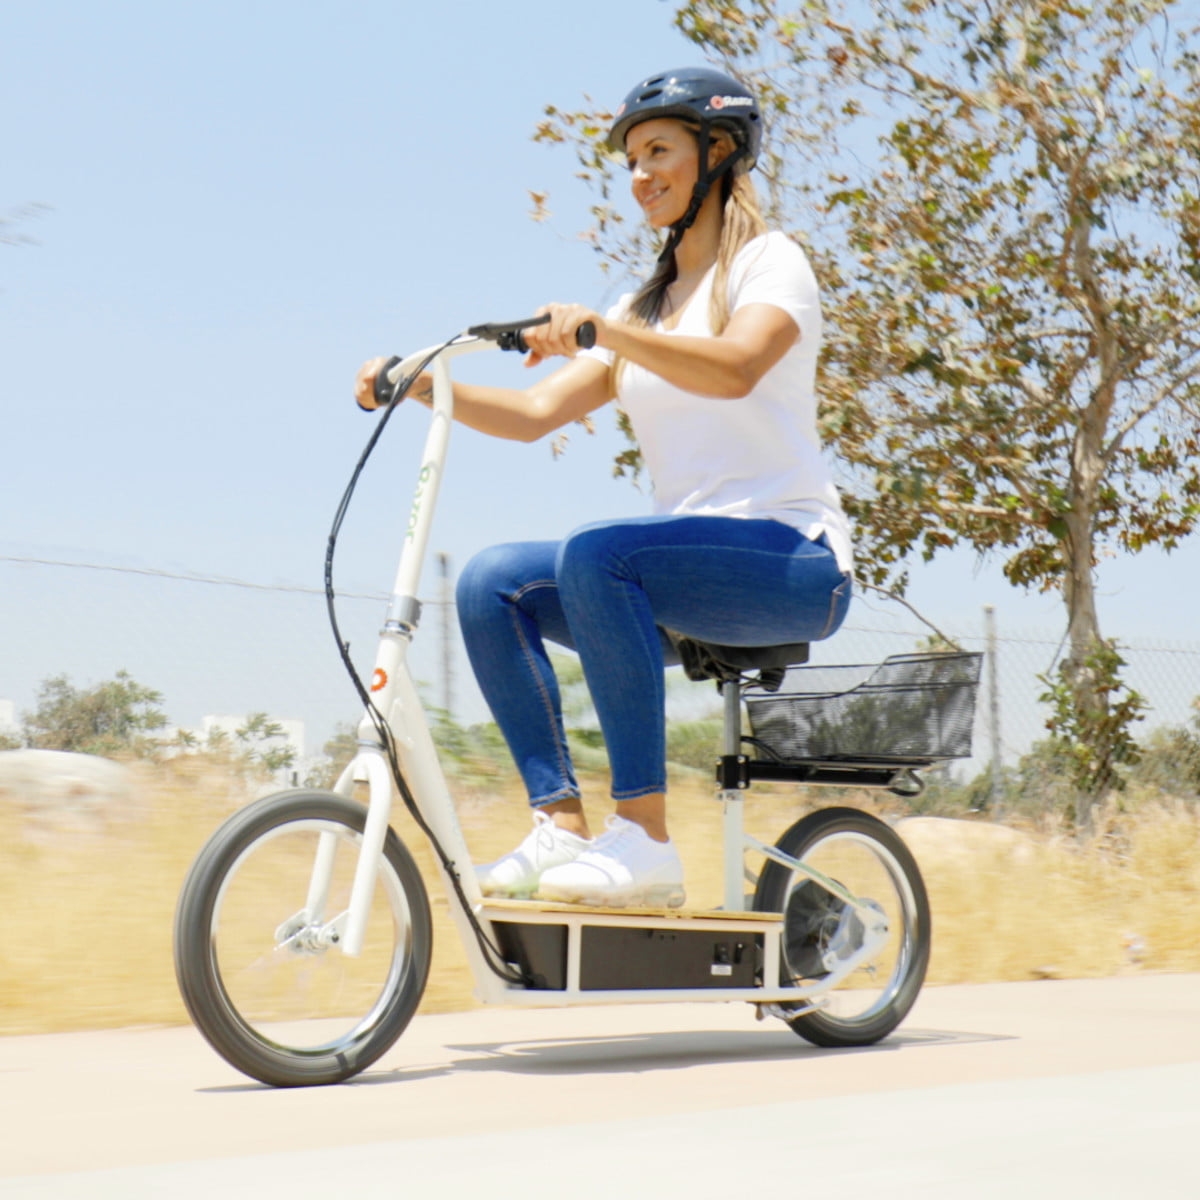 walmart slashes prices on electric bikes and razor e scooters for labor day 36 volt ecosmart metro scooter  1